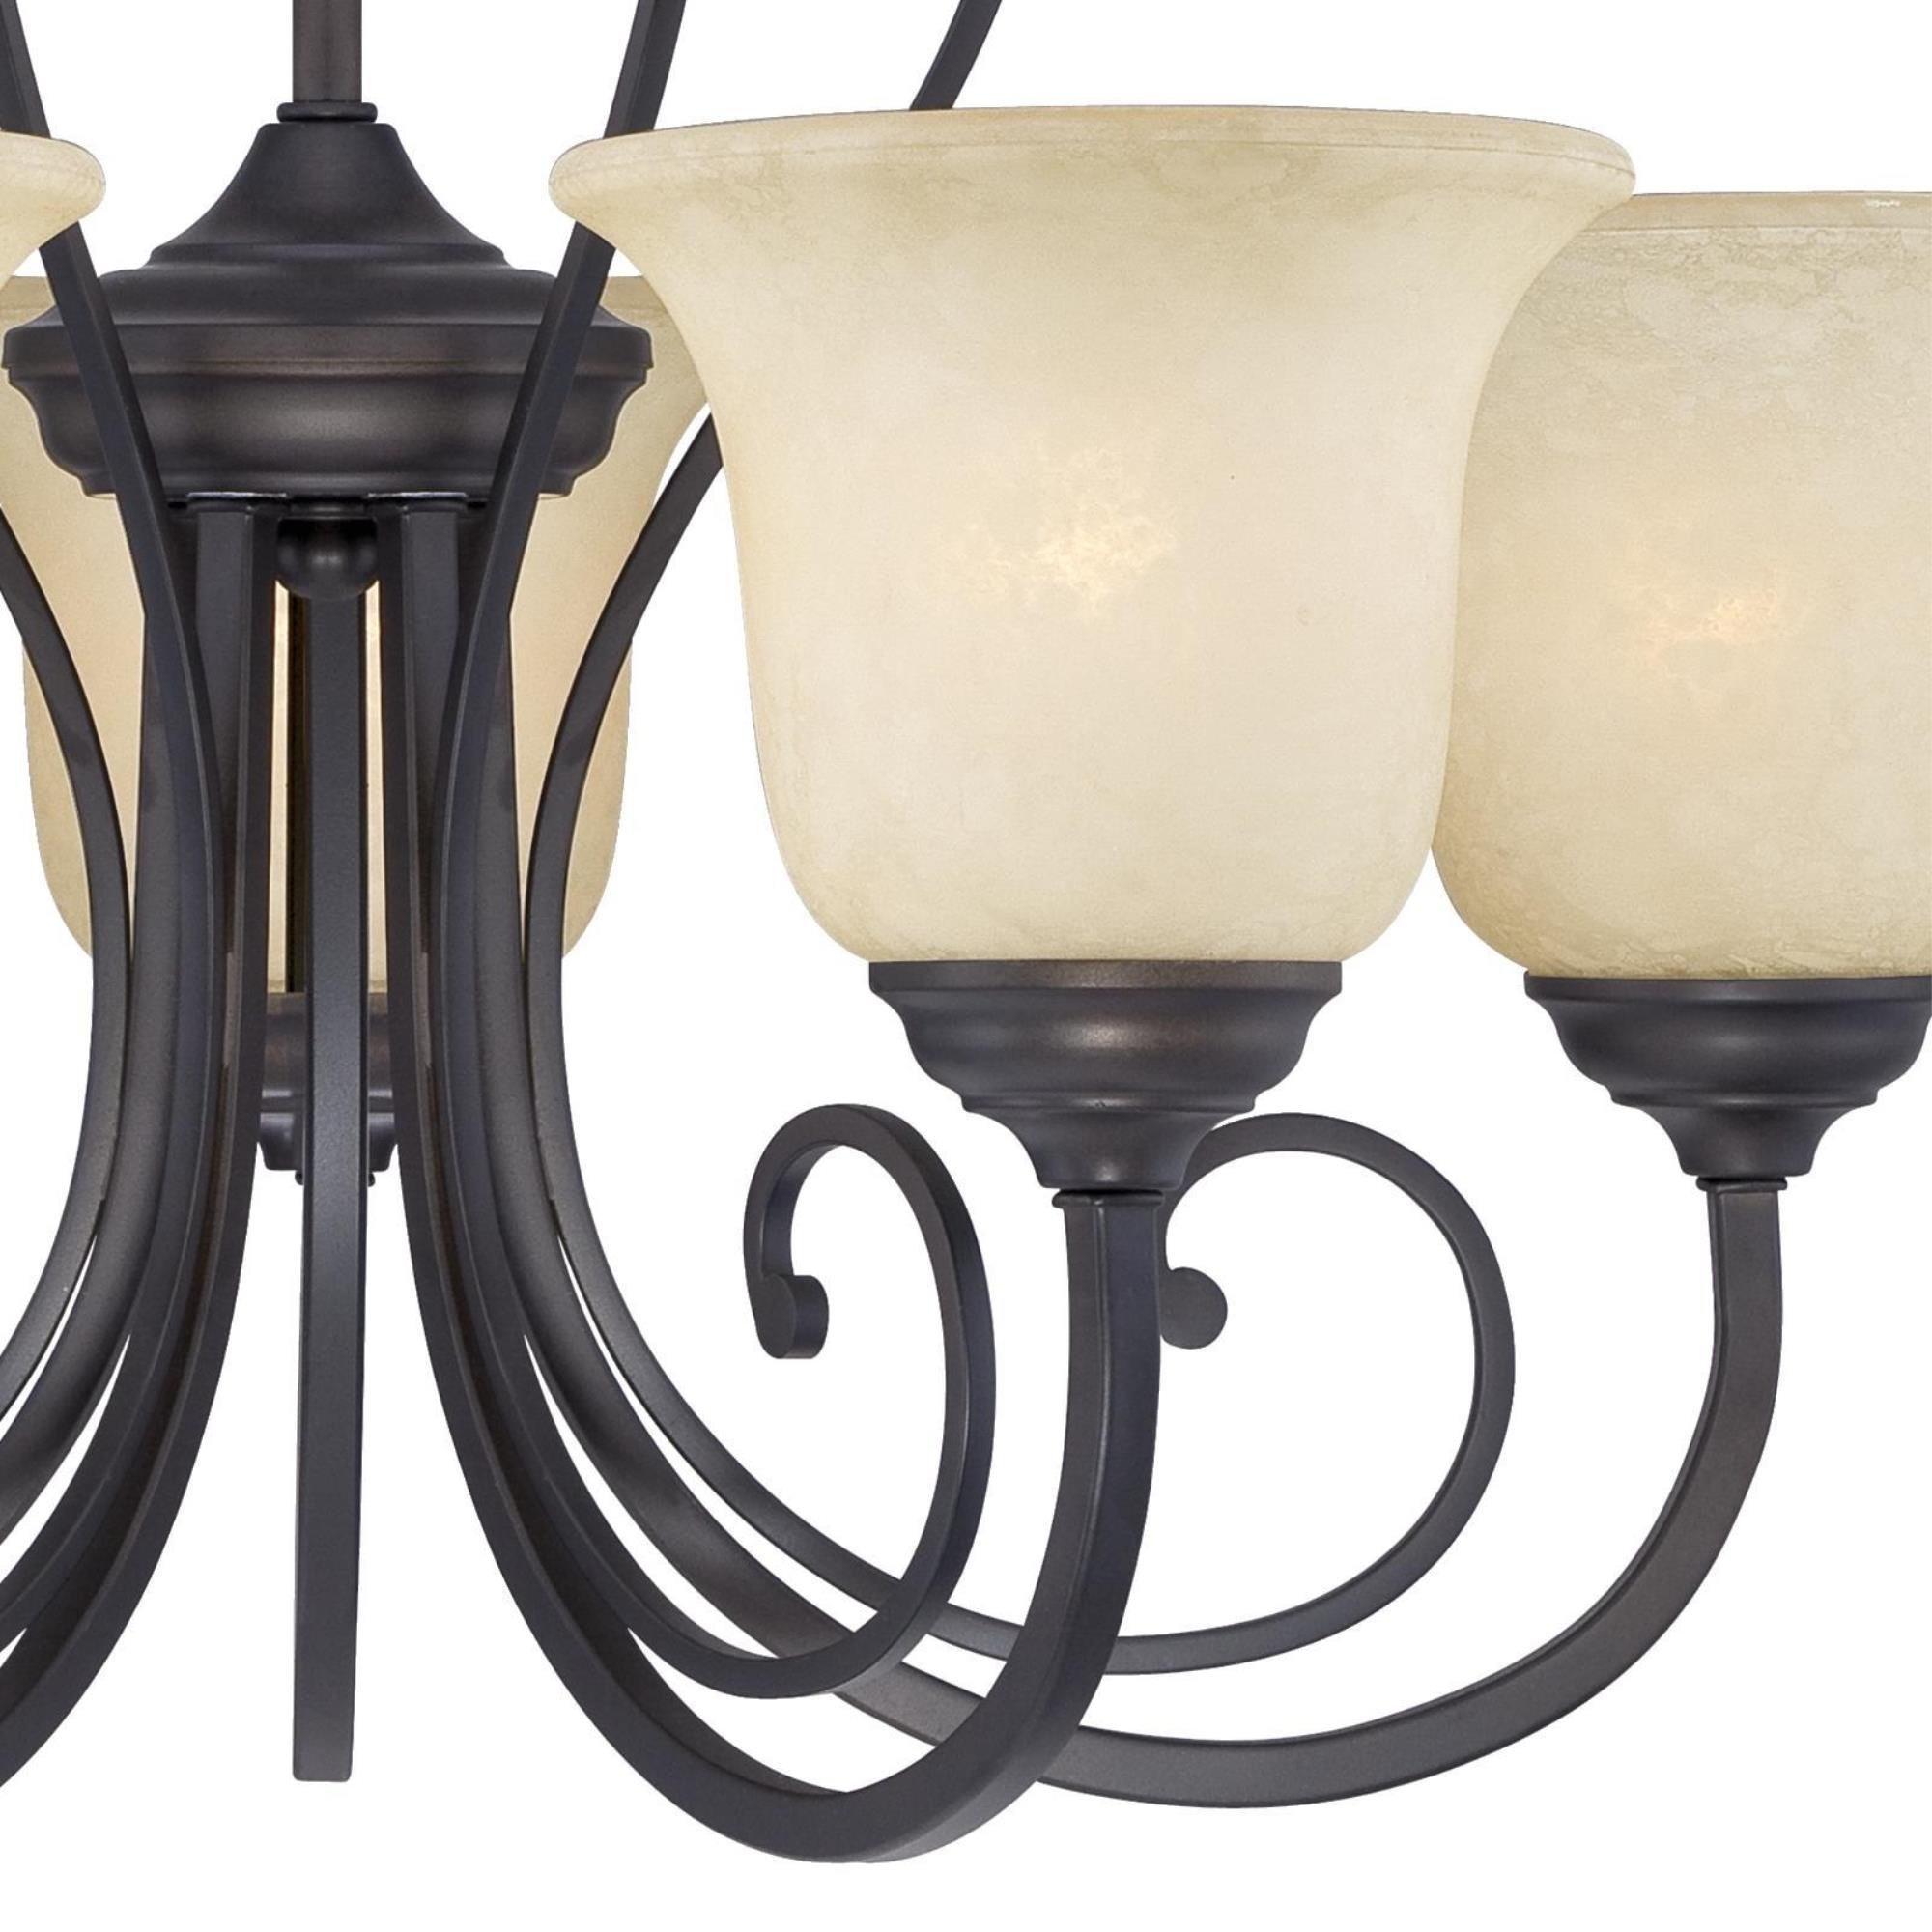 Westinghouse 6340700 Callan Five-Light Indoor Chandelier, Oil Rubbed Bronze Finish with Caramel Scavo Glass by Westinghouse (Image #4)